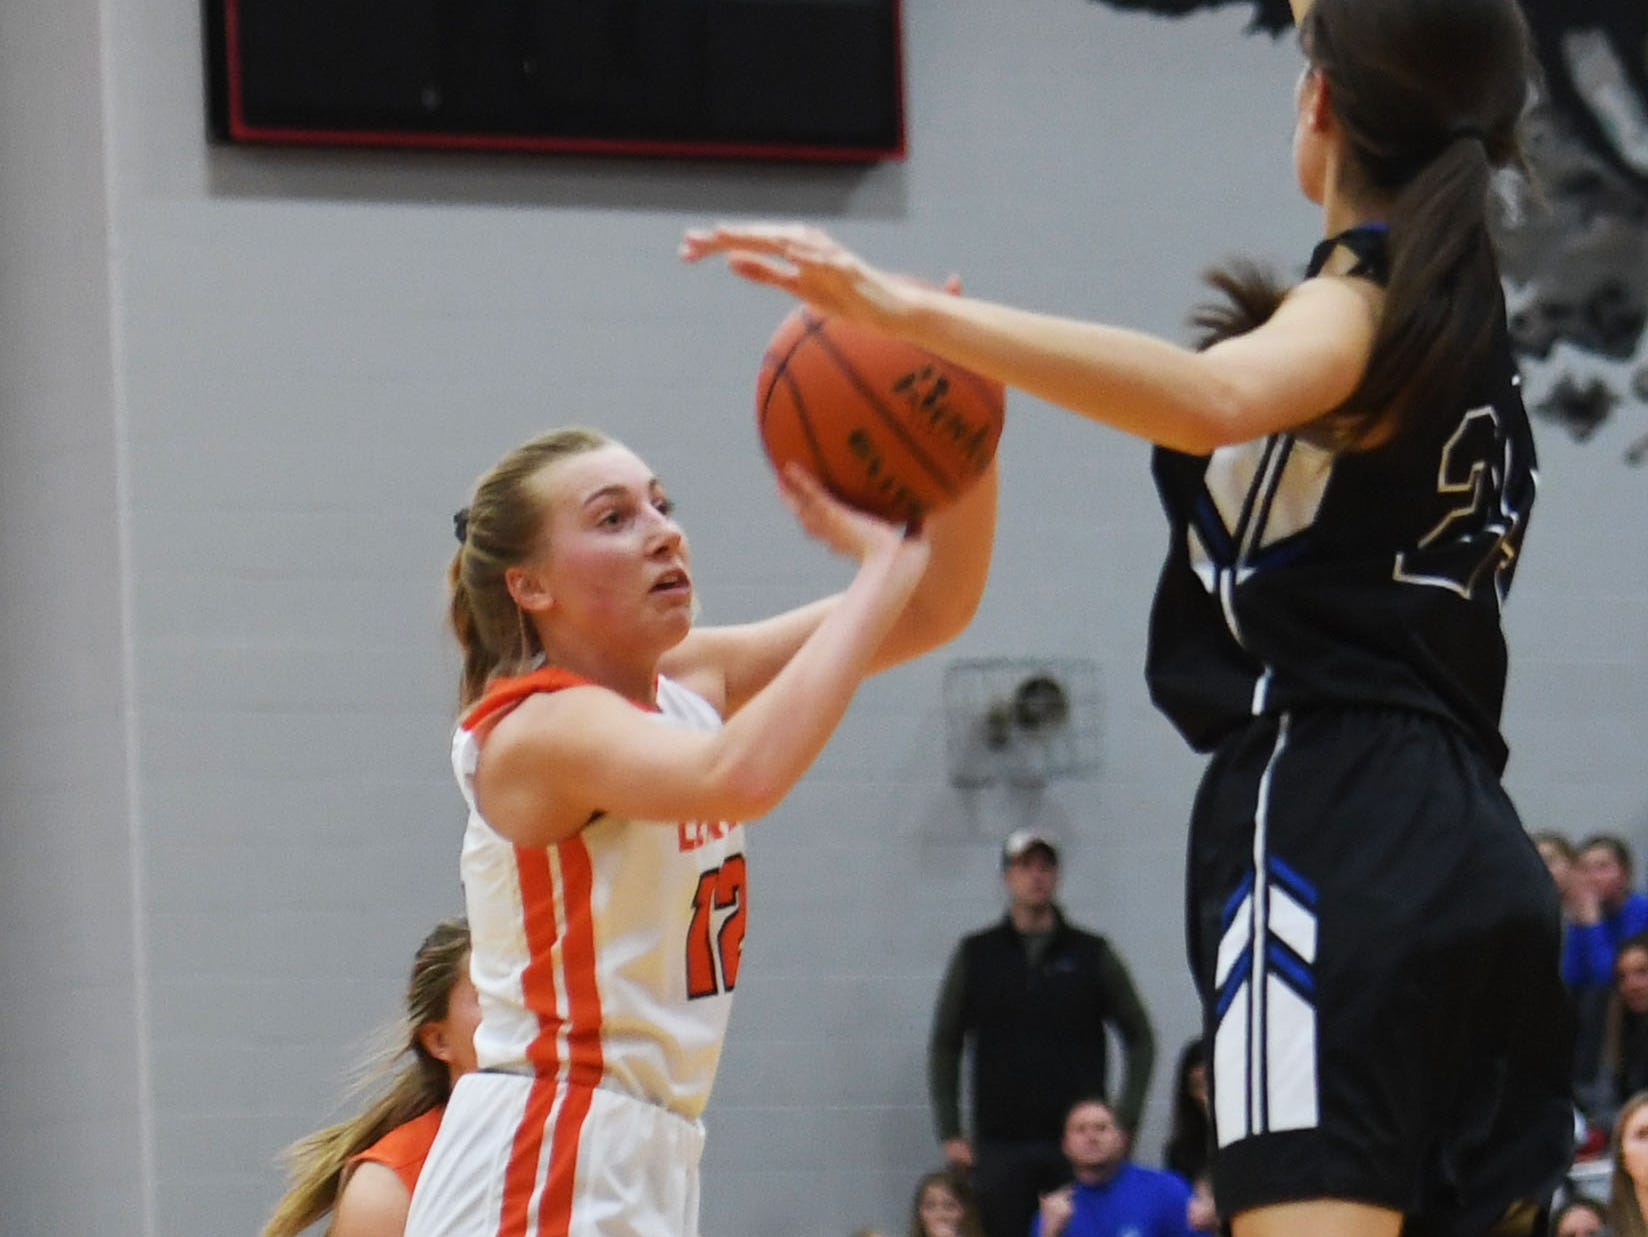 Lennox's Isabel Ihnen takes a shot during the game against Sioux Falls Christian Thursday, March 7, at Brandon Valley High School in Brandon Valley.